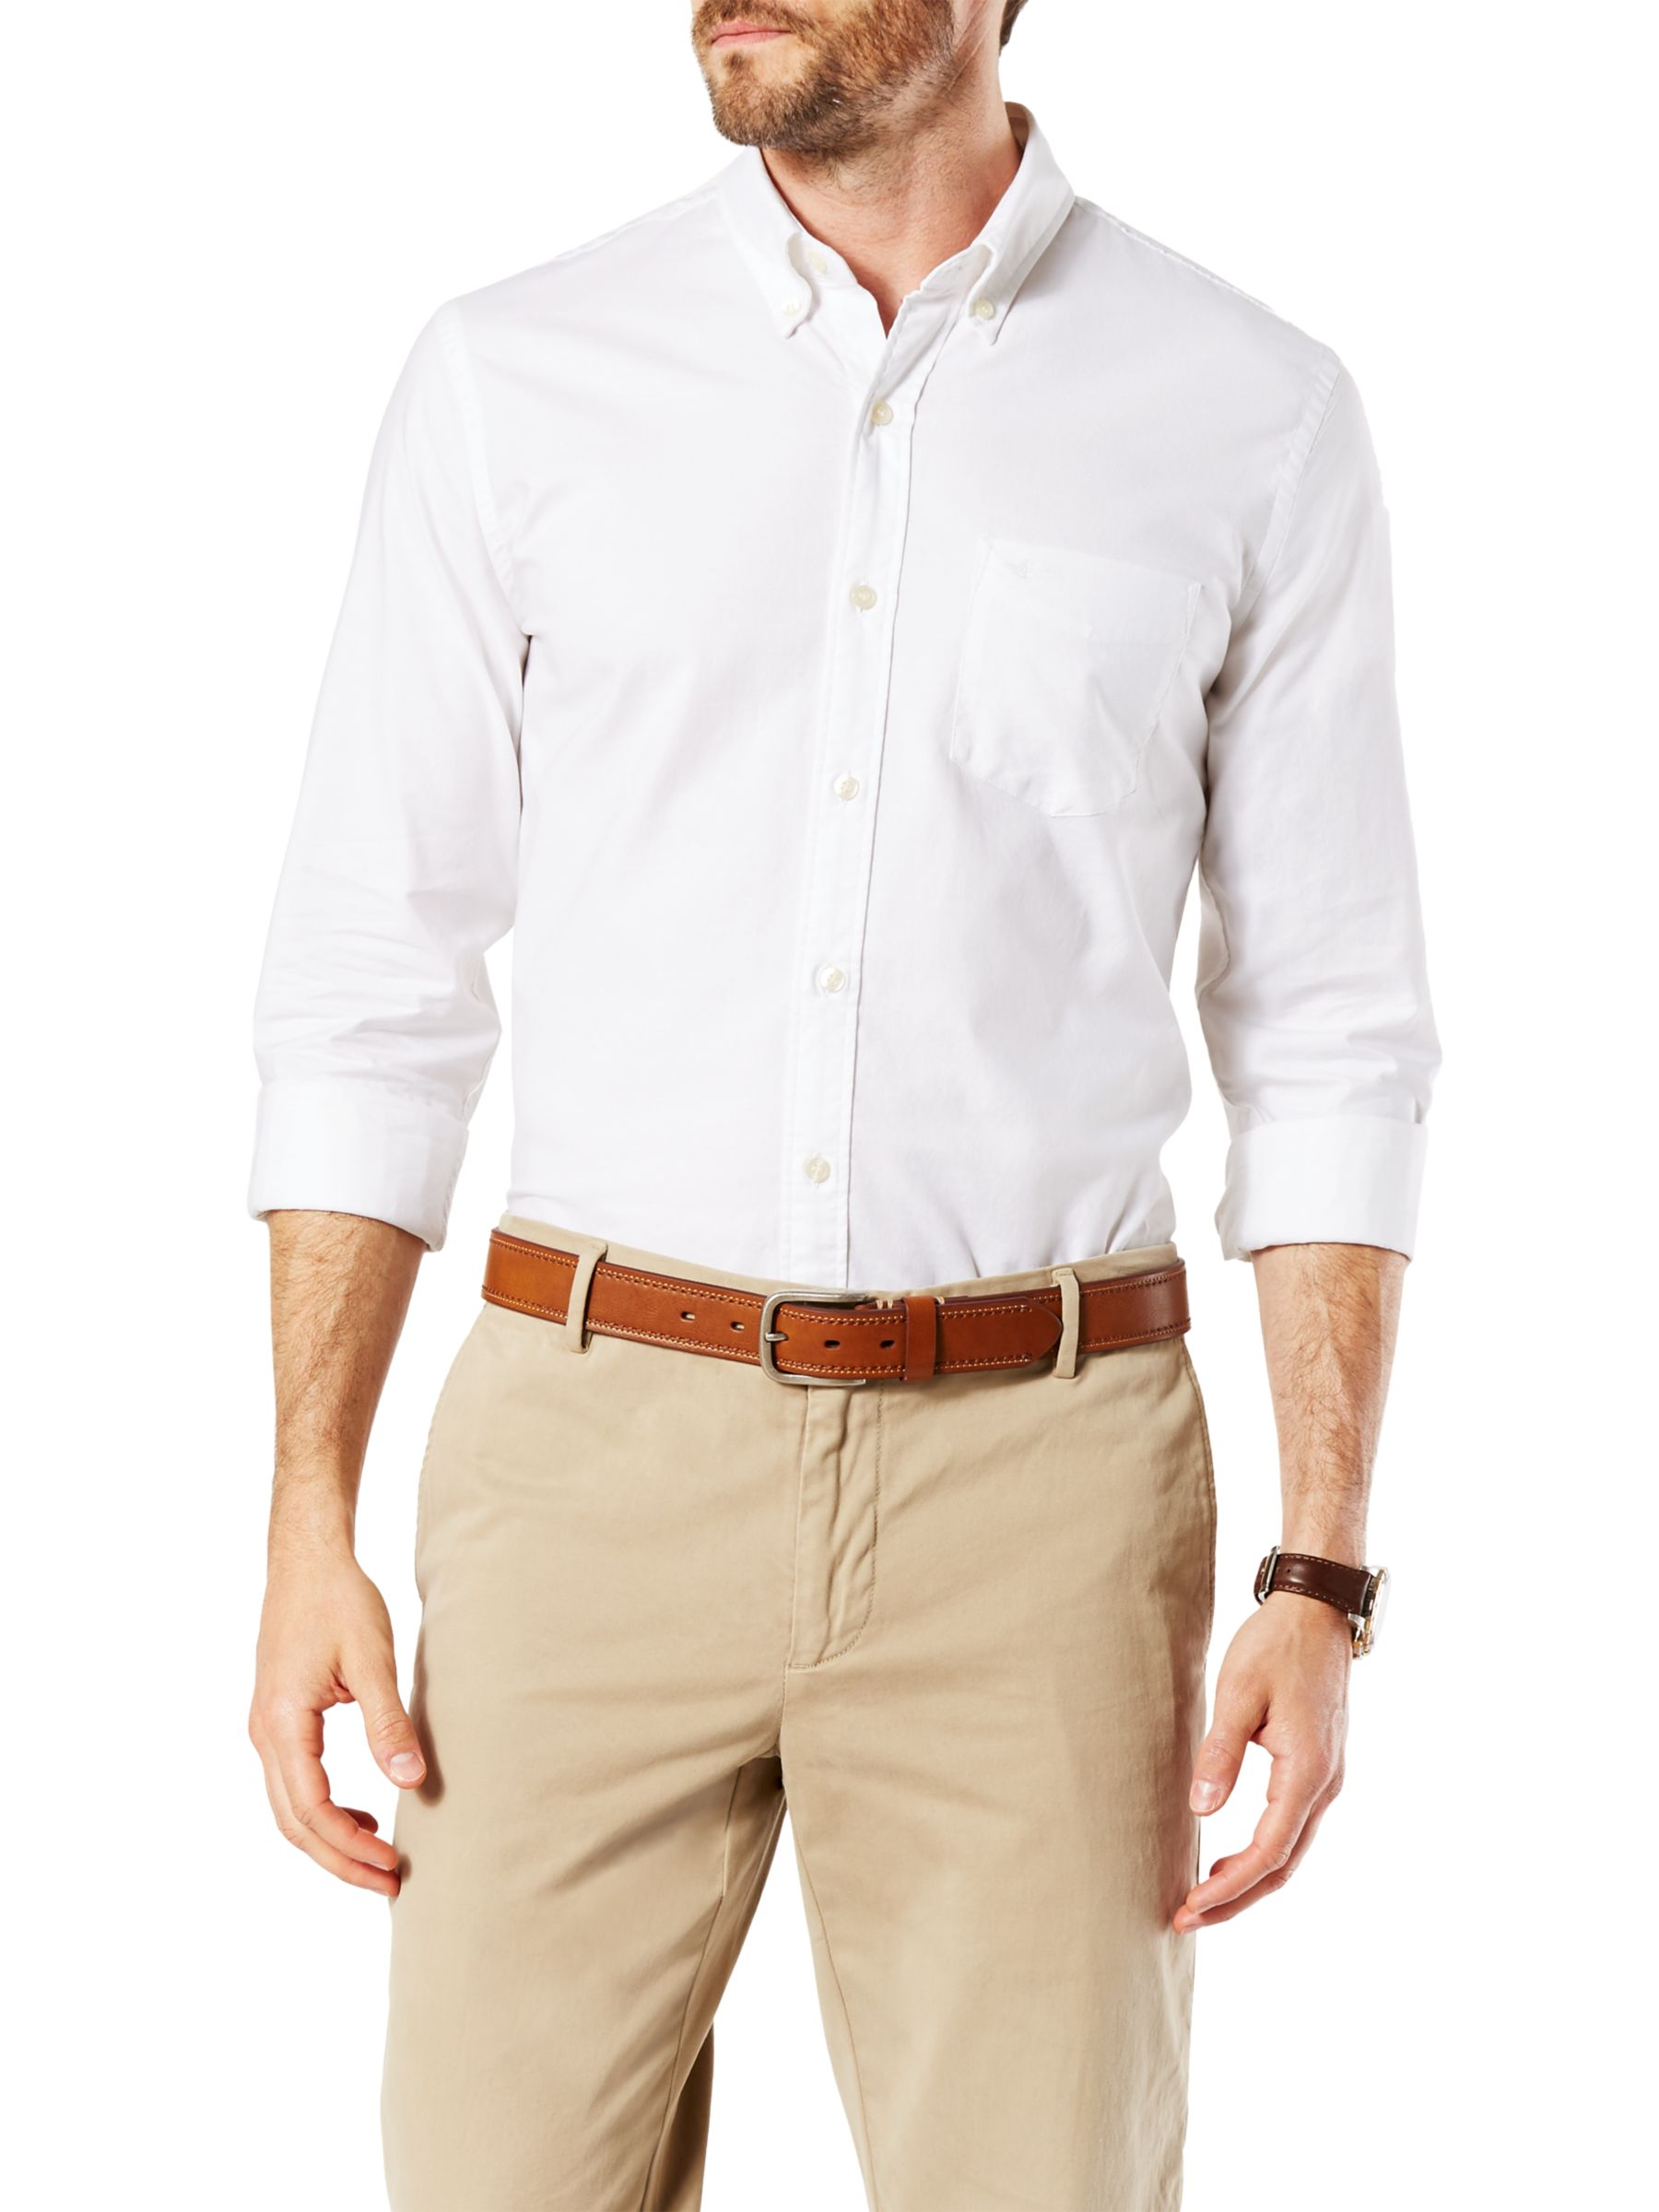 Dockers Dockers Stretch Long Sleeve Oxford Shirt, Paper White